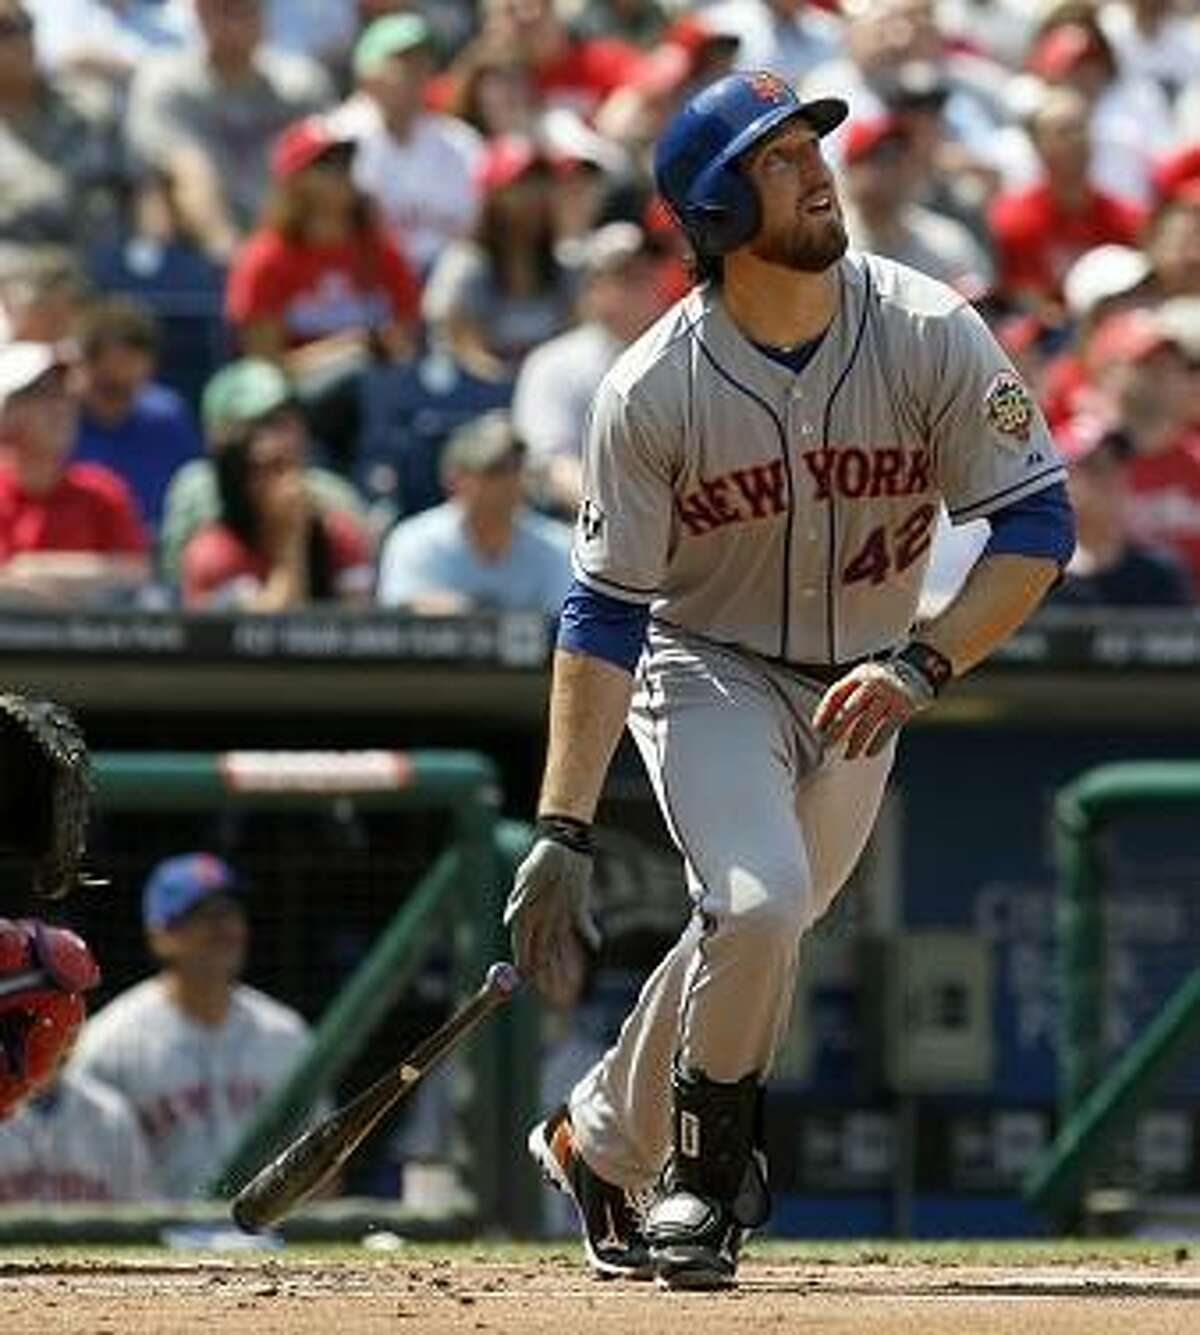 New York Mets' Ike Davis watches his two-run home run against the Philadelphia Phillies in the first inning of a baseball game on Sunday, April 15, 2012, in Philadelphia. (AP Photo/H. Rumph Jr)